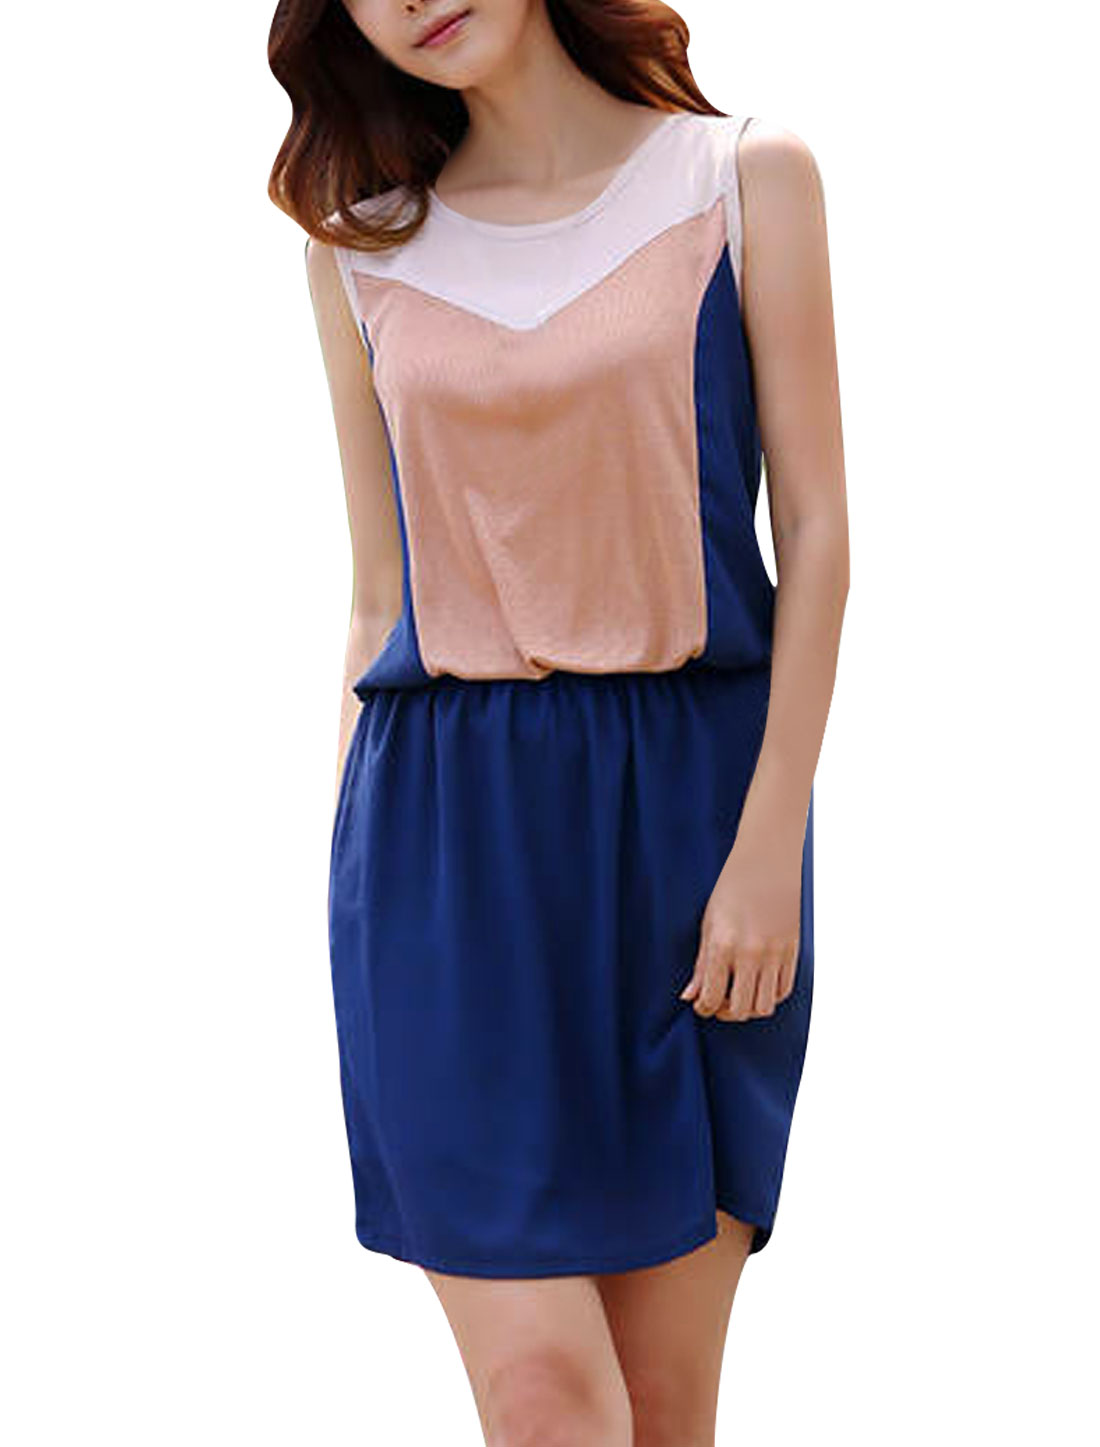 Women Sleeveless Design Round Neck Elastic Waist Slim Fit Dress Blue S